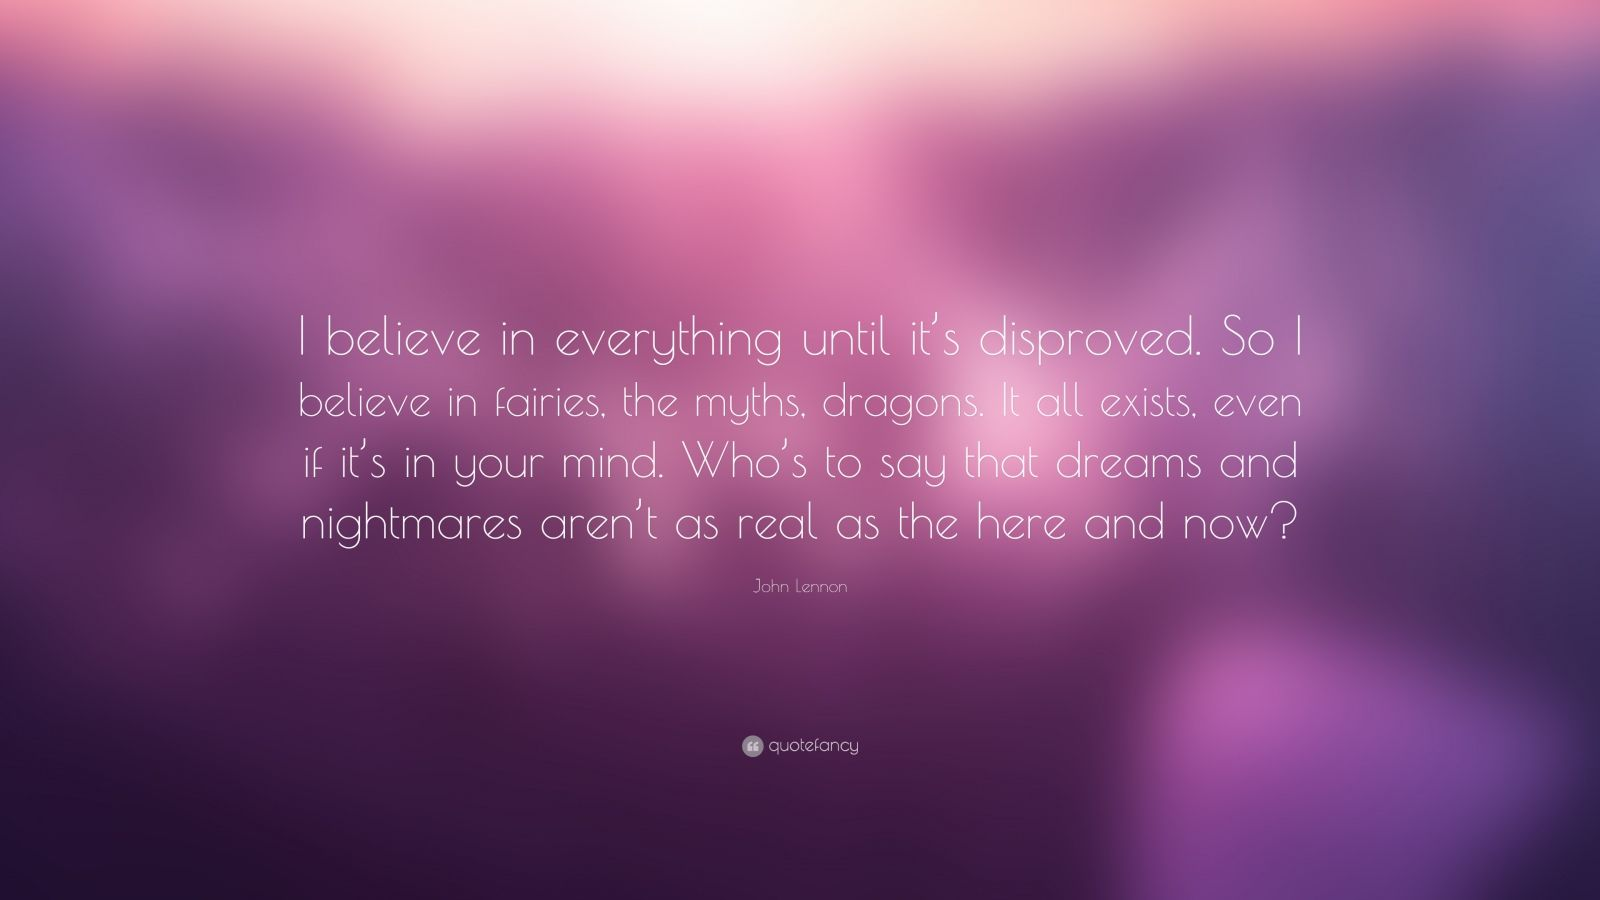 "John Lennon Quote: ""I believe in everything until it's disproved. So I believe in fairies, the myths, dragons. It all exists, even if it's in your mind. Who's to say that dreams and nightmares aren't as real as the here and now?"""